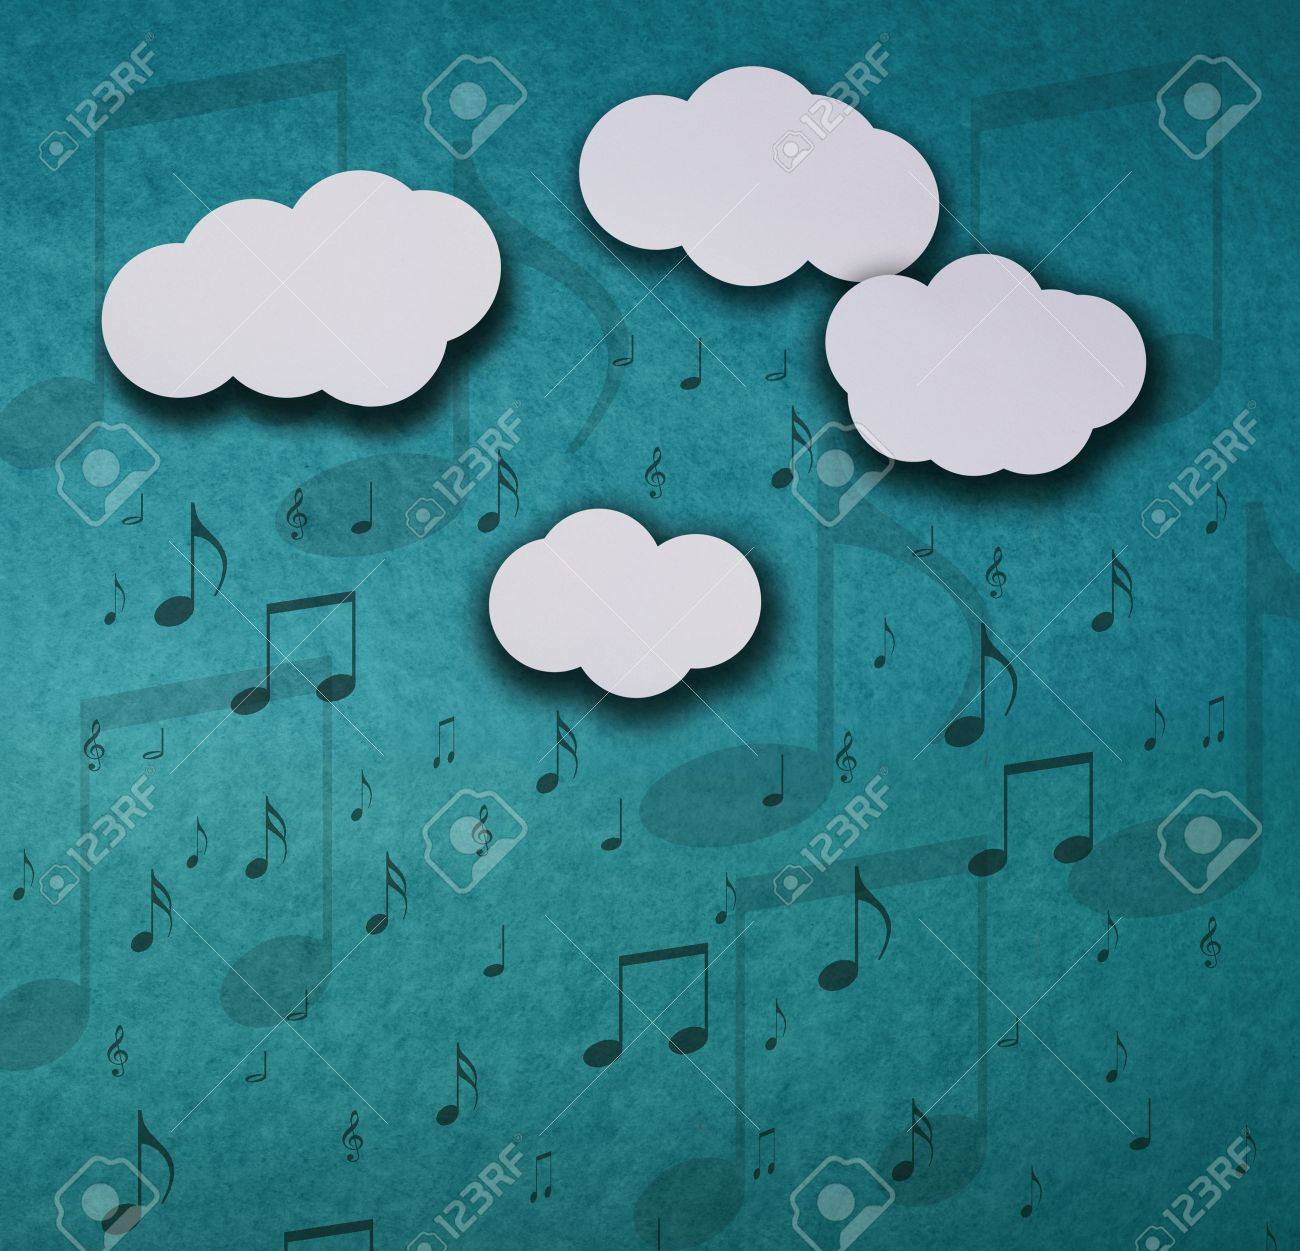 Background cardboard collage composition representing clouds, sky and notes Stock Photo - 19212329